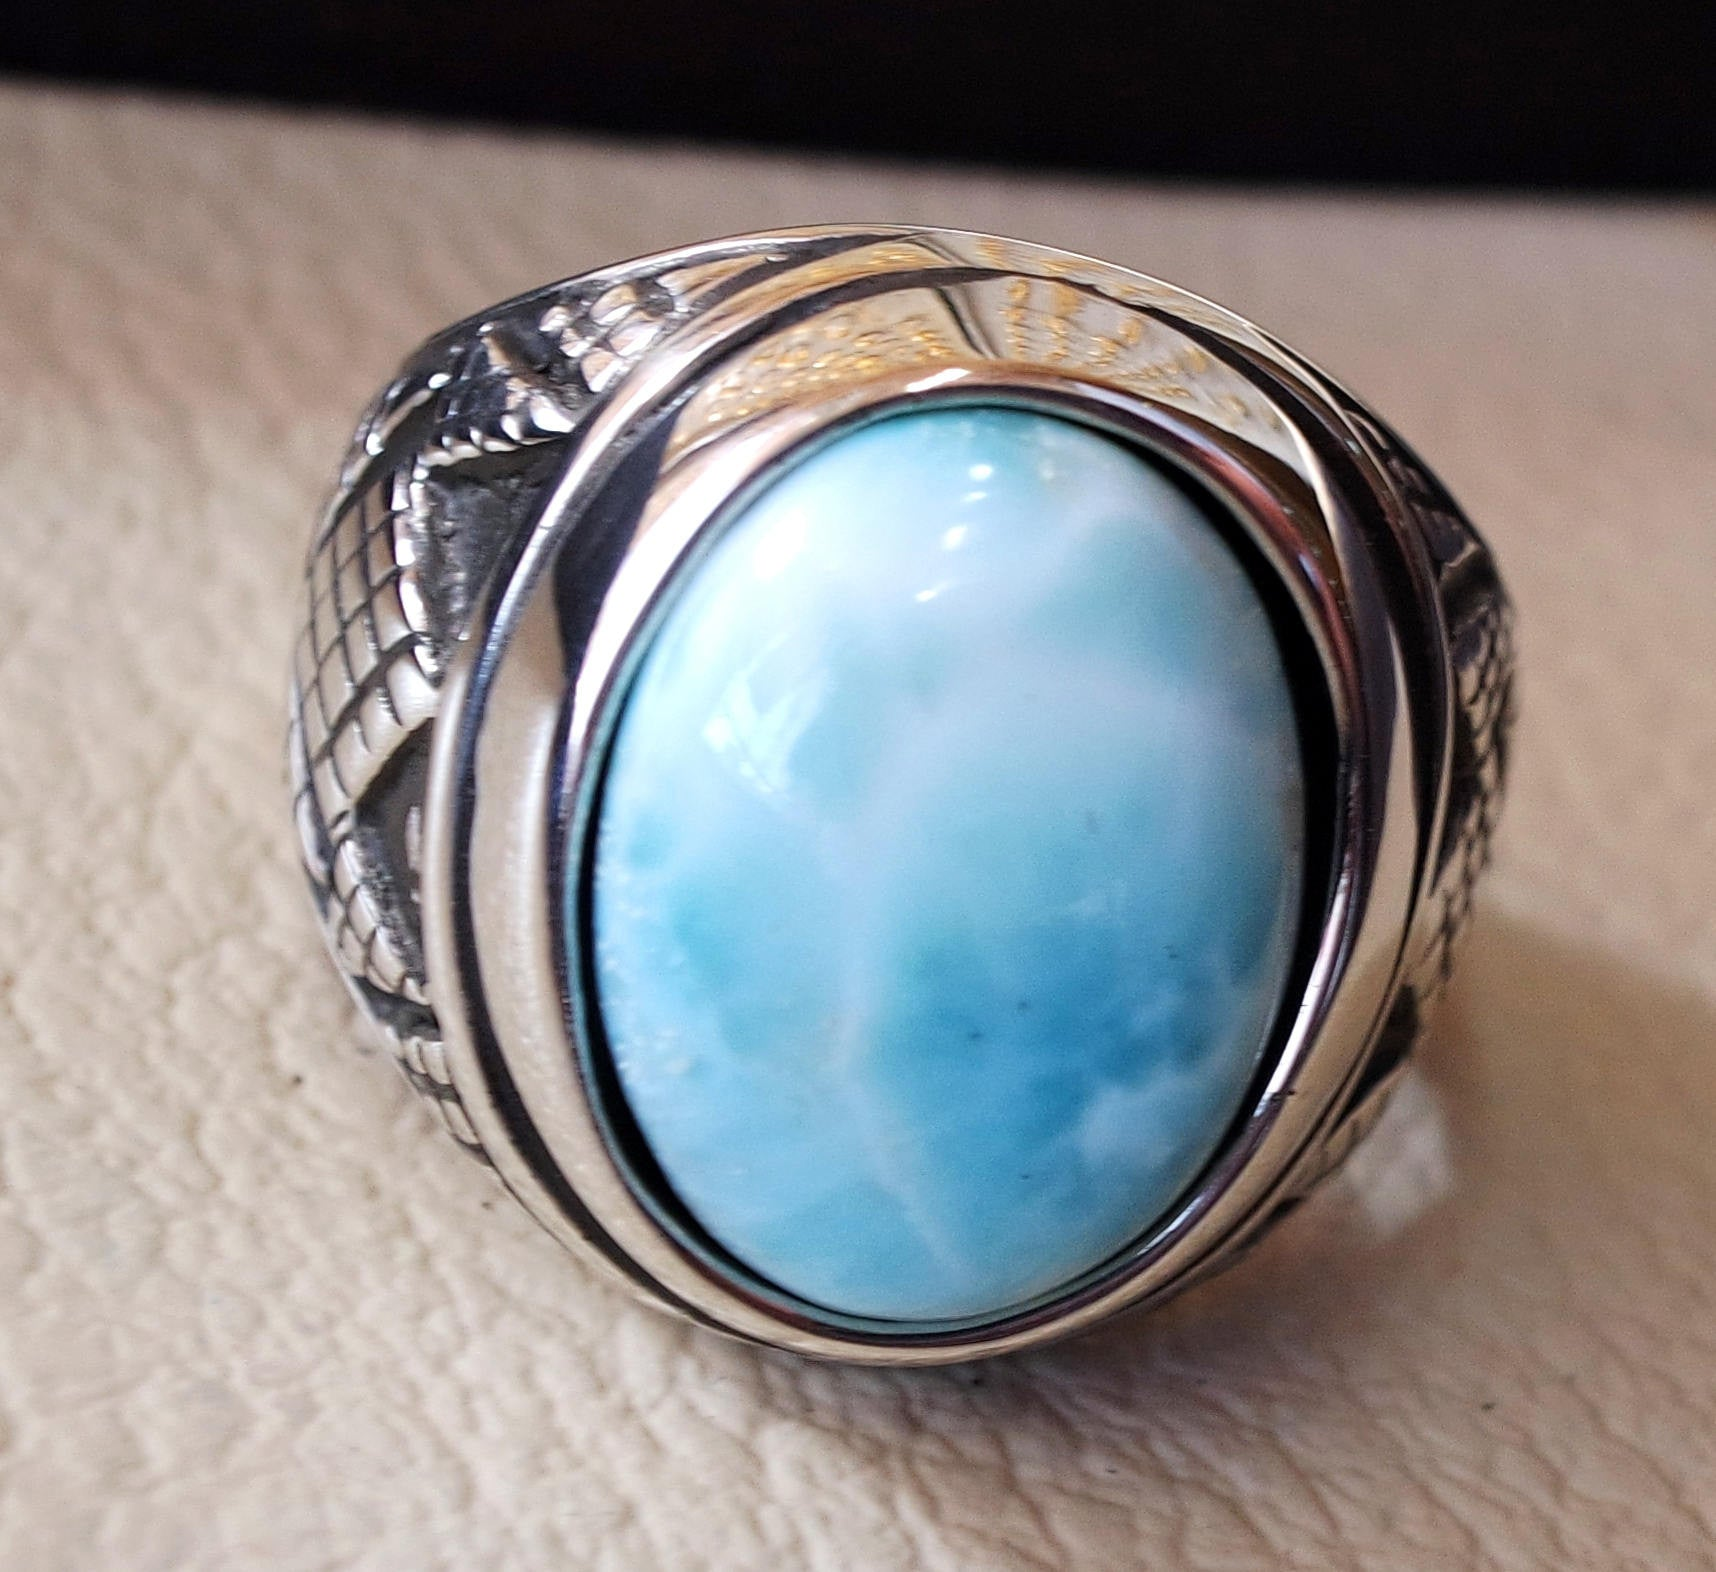 Dominican larimar blue natural stone ring sterling silver 925 men jewelry all sizes semi precious gem highest quality middle eastern style